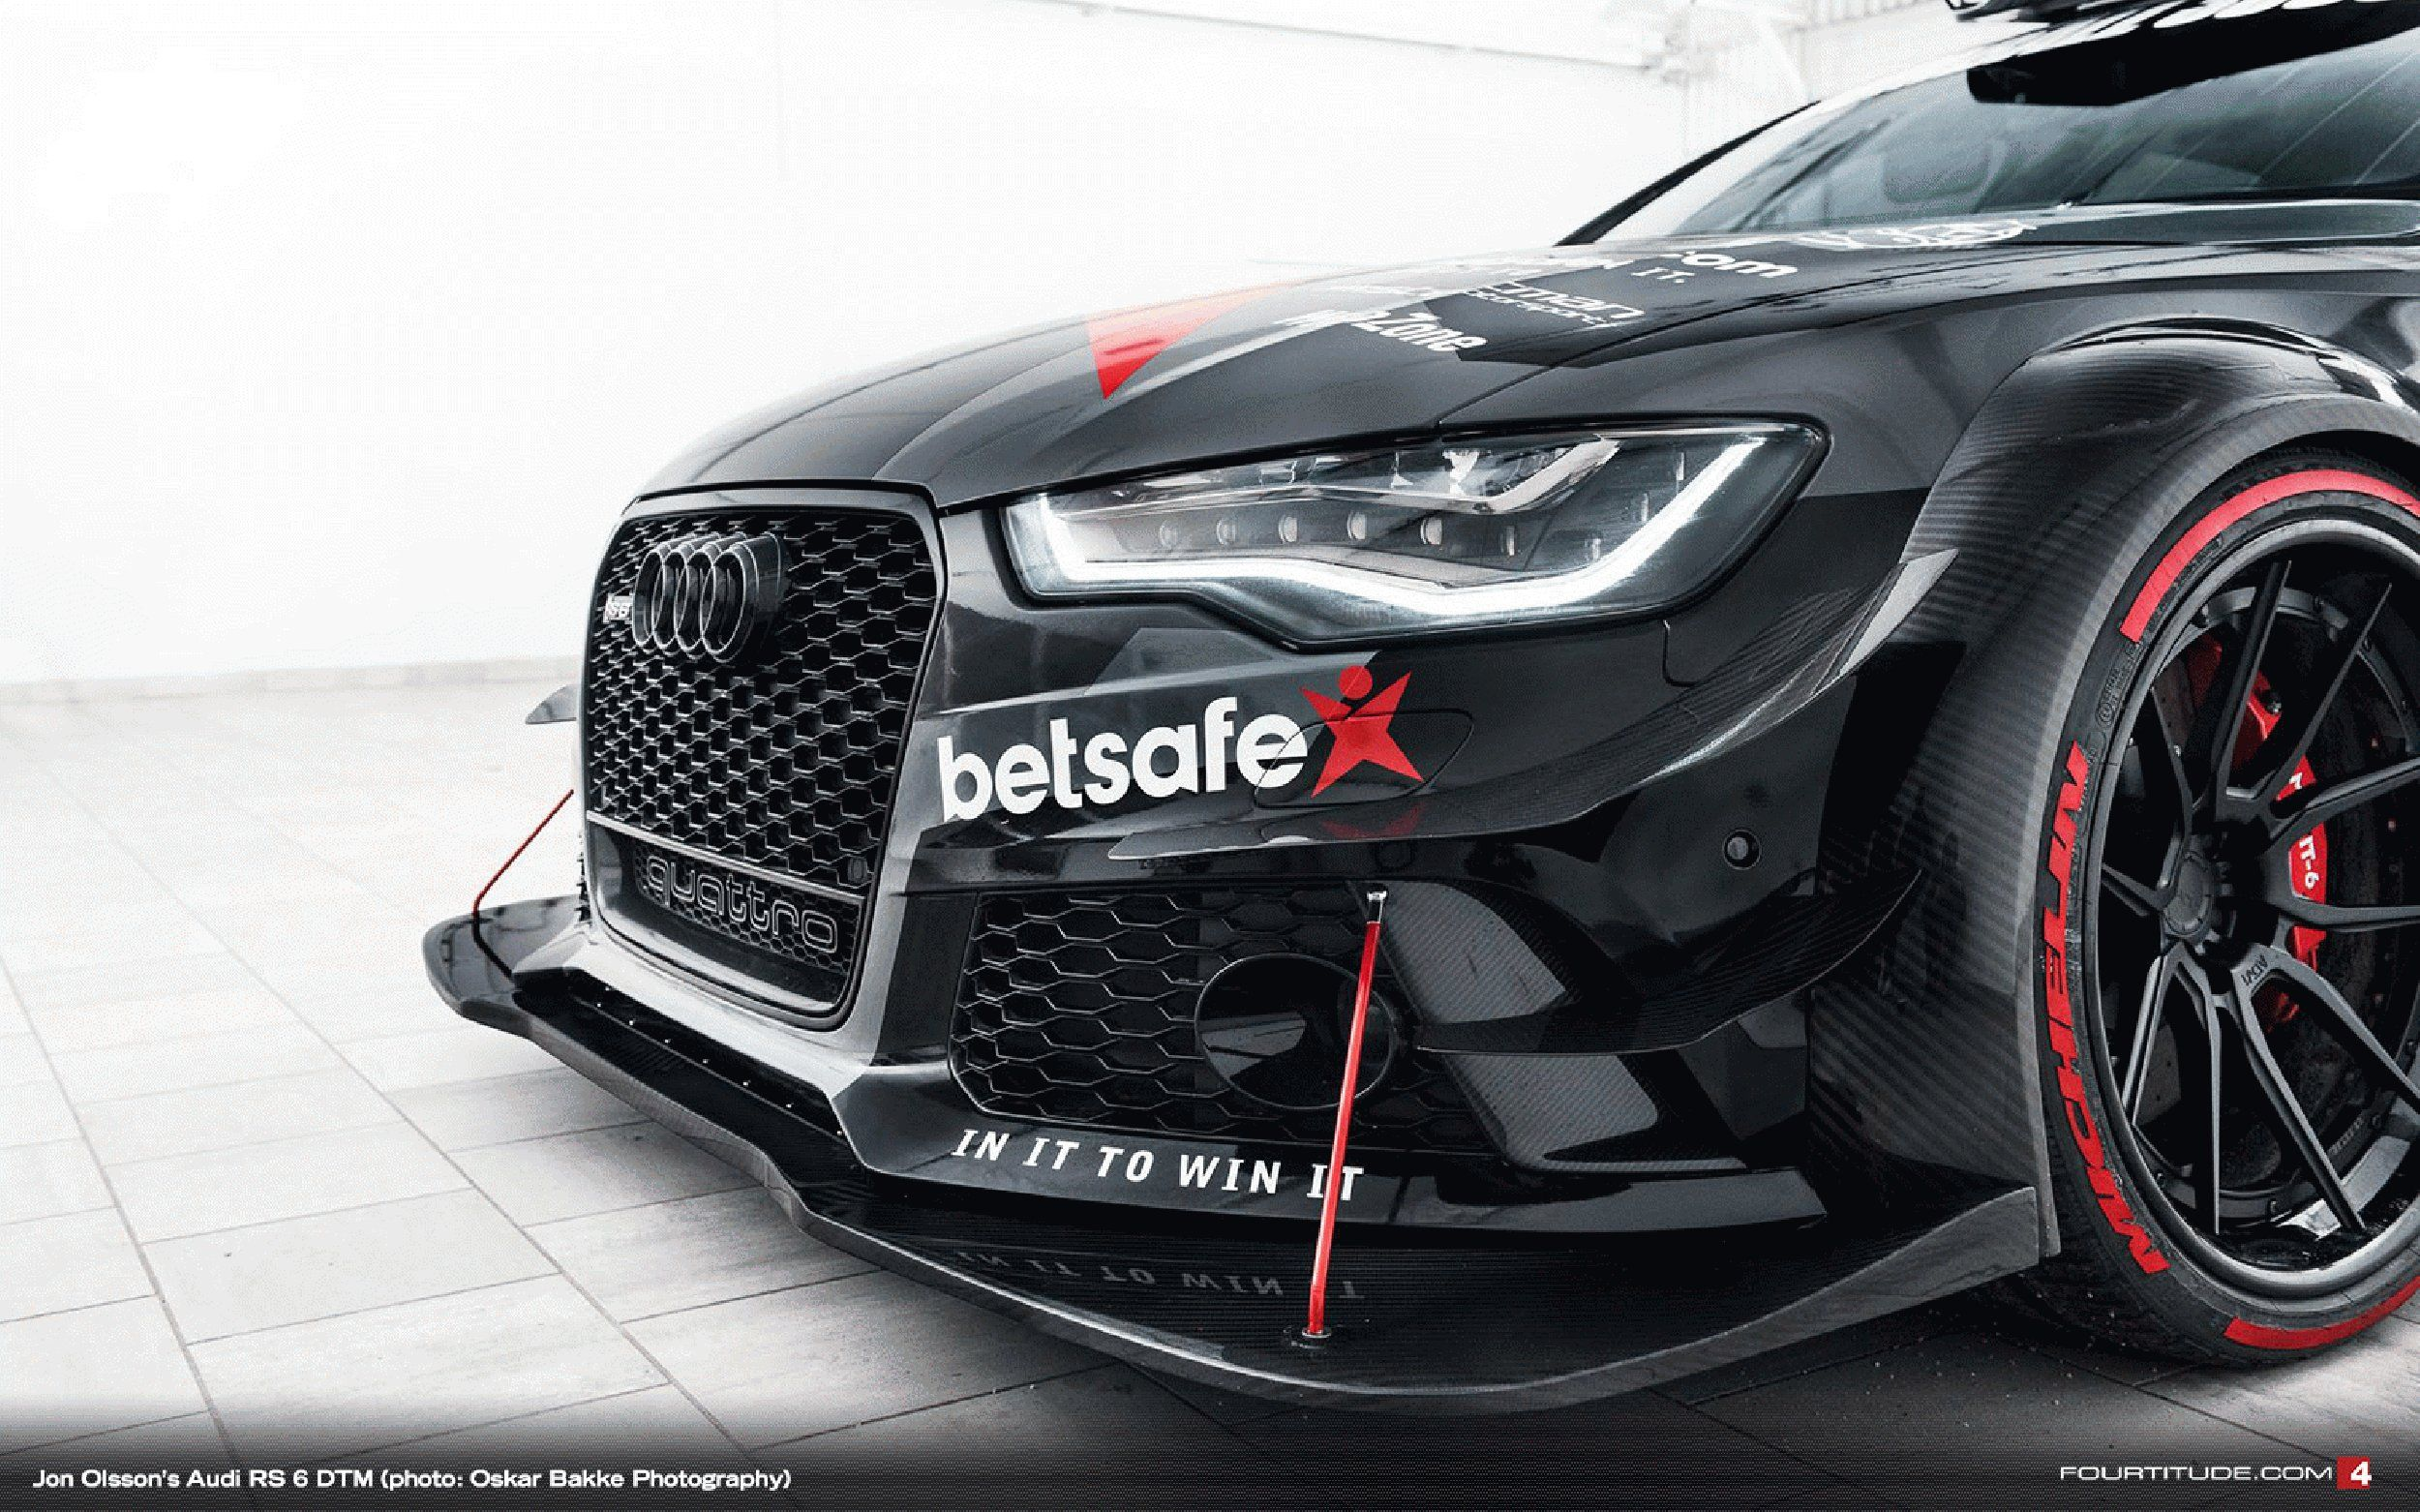 The Betsafe Audi RS6  950 horsepower  Awesome sound system